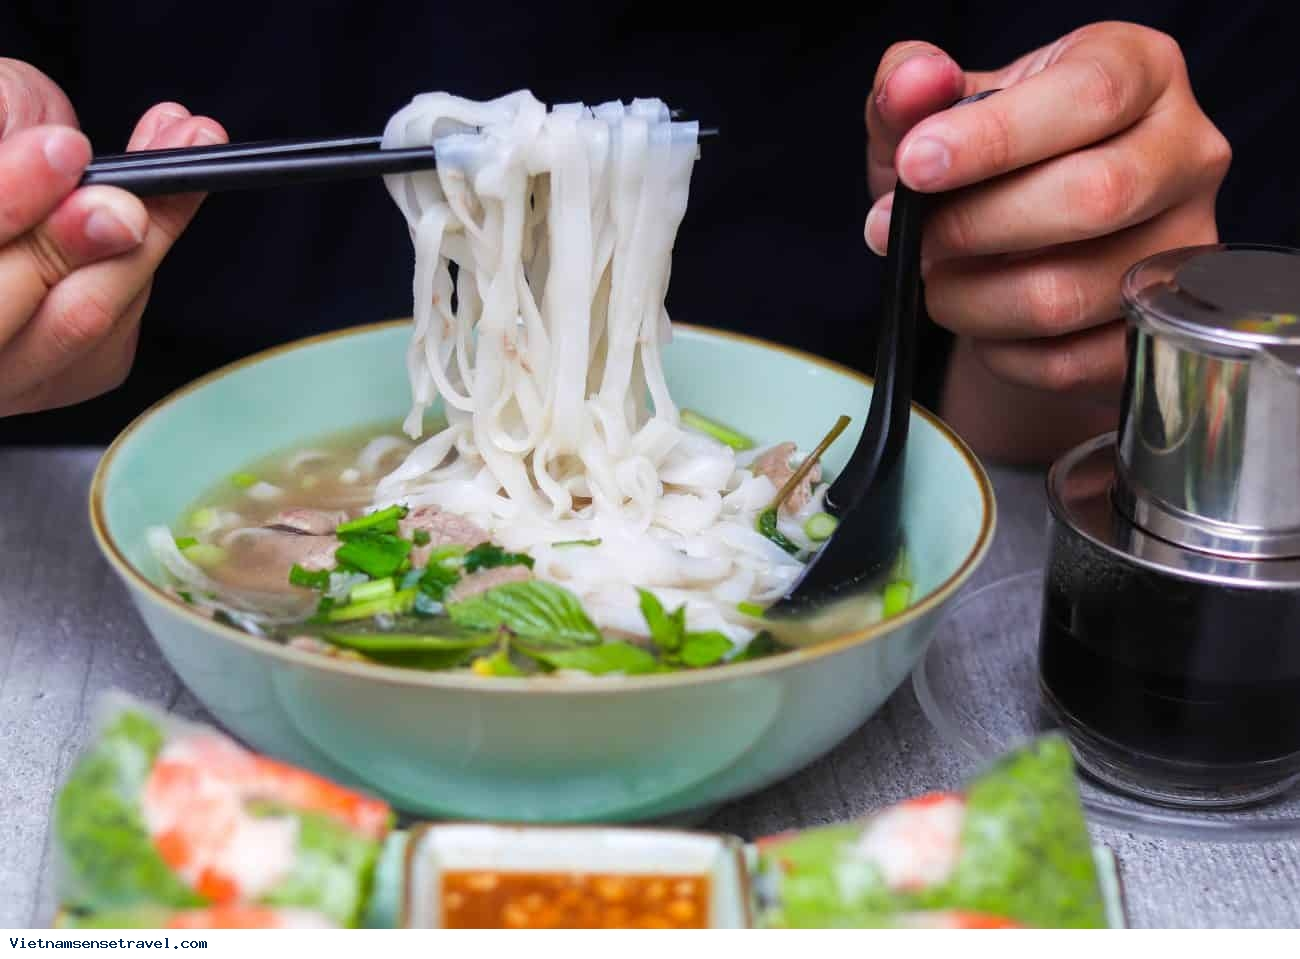 3 Noodle Dishes Made From Rice That Be Famous In Vietnam - Ảnh 1